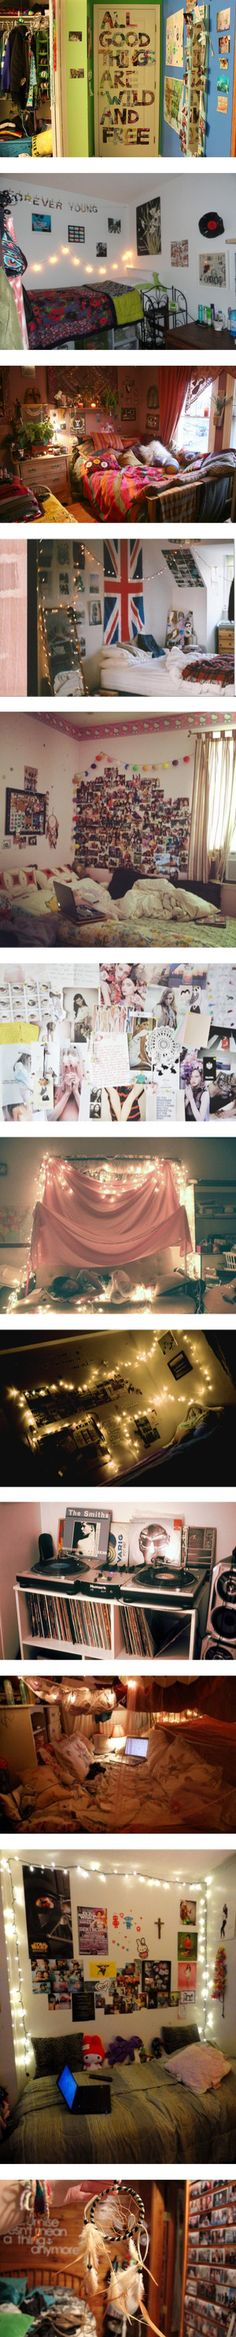 """indie/hipster/alternative bedroom inspiration"" by the-hipster-tip-sisters I'm SO in love with these ideas."